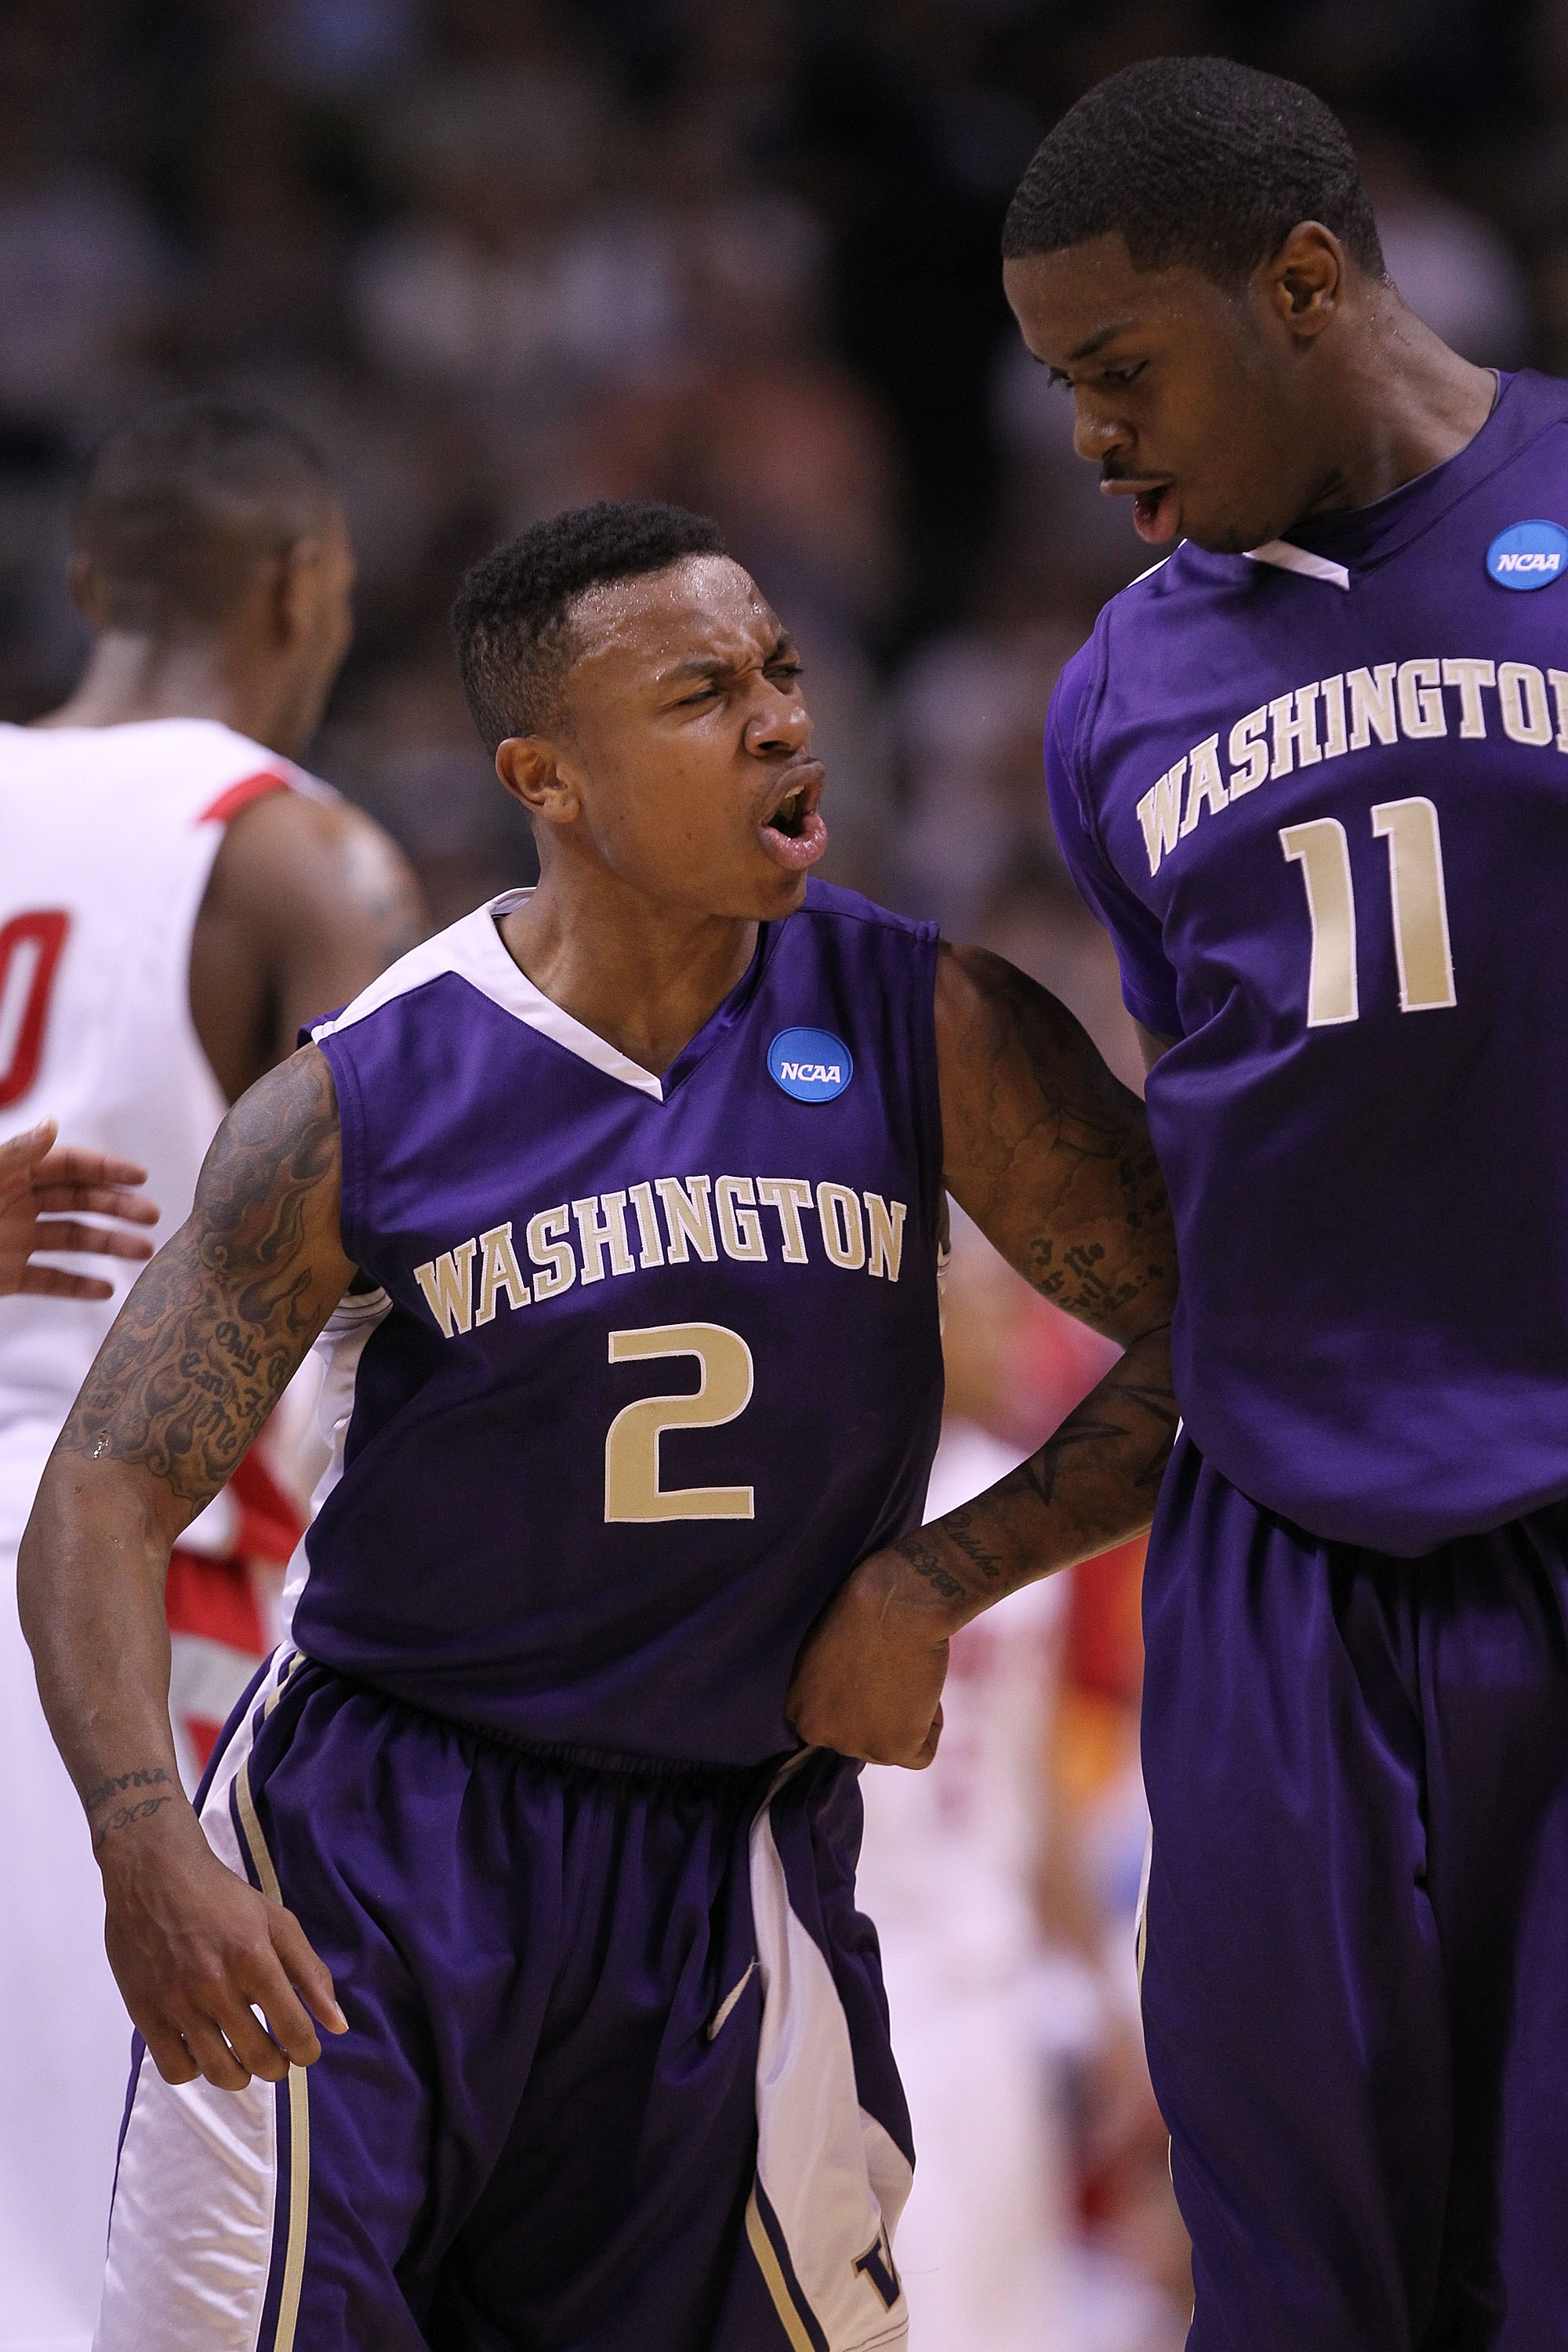 SAN JOSE, CA - MARCH 20:  Guard Isaiah Thomas #2 of the Washington Huskies celebrates with Matthew Bryan-Amaning #11 after a three point basket to give the Huskies a 10 point lead against the New Mexico Lobos in the second round of the 2010 NCAA men's bas